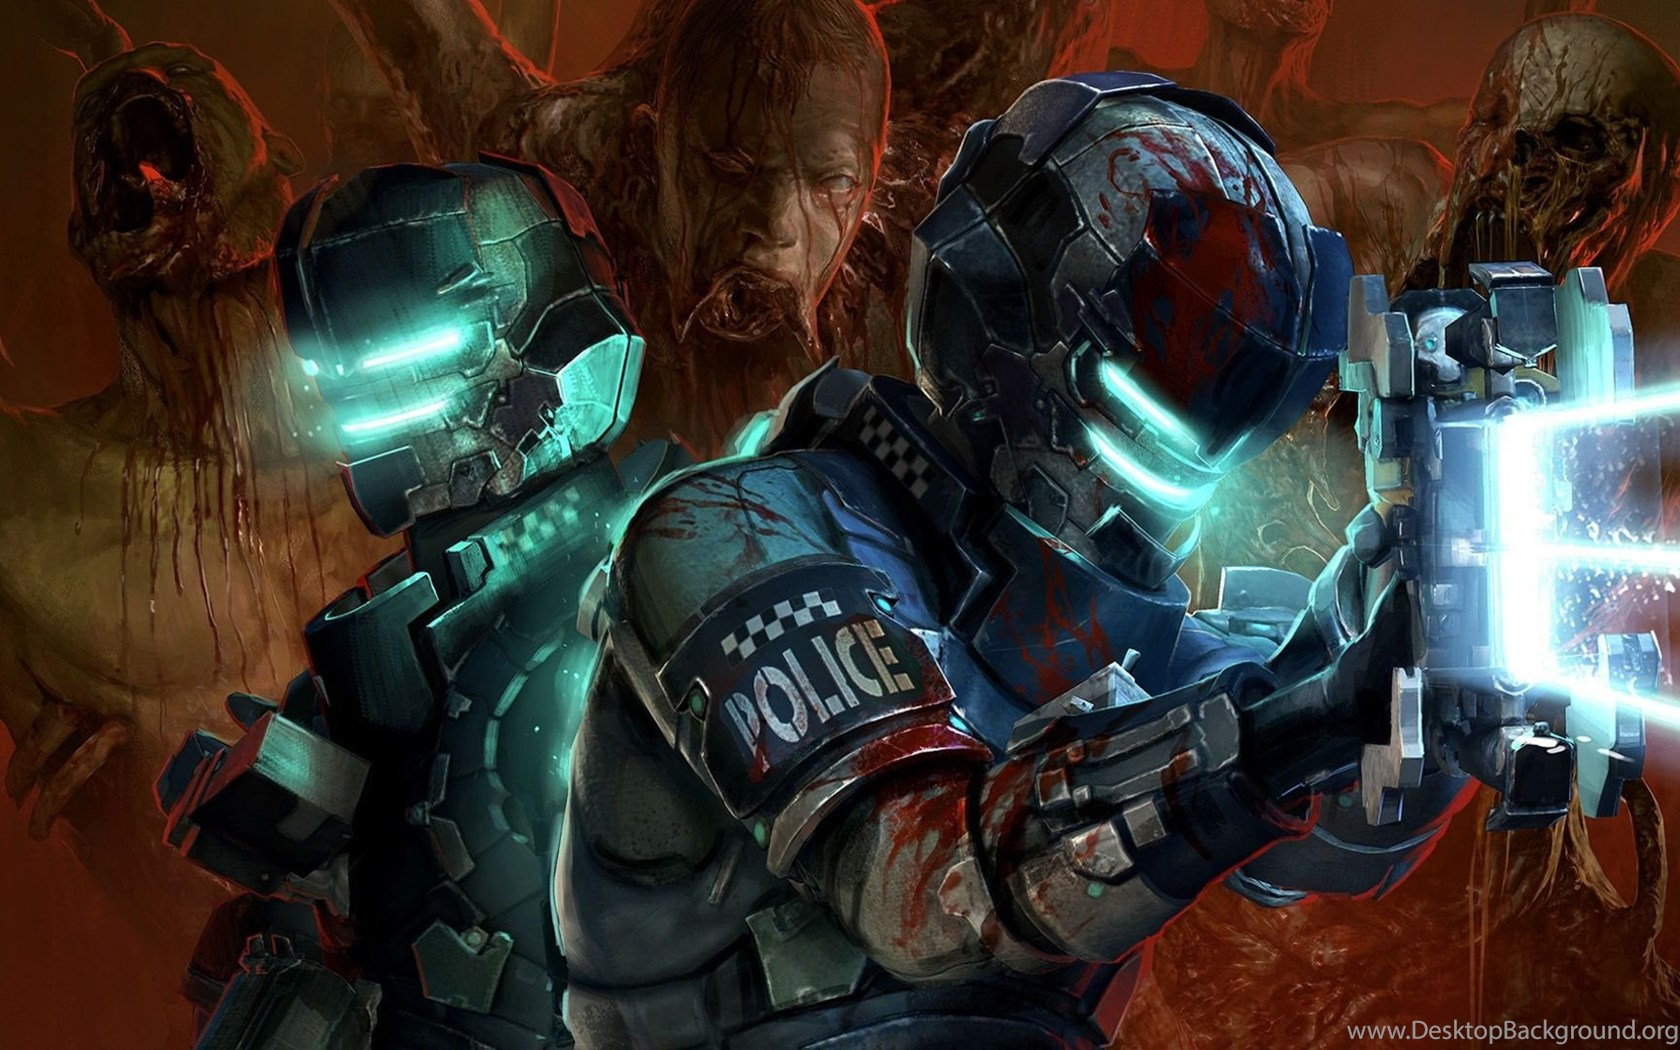 Dead Space 2 Wallpapers Hd Hd Wallpapers And Pictures Desktop